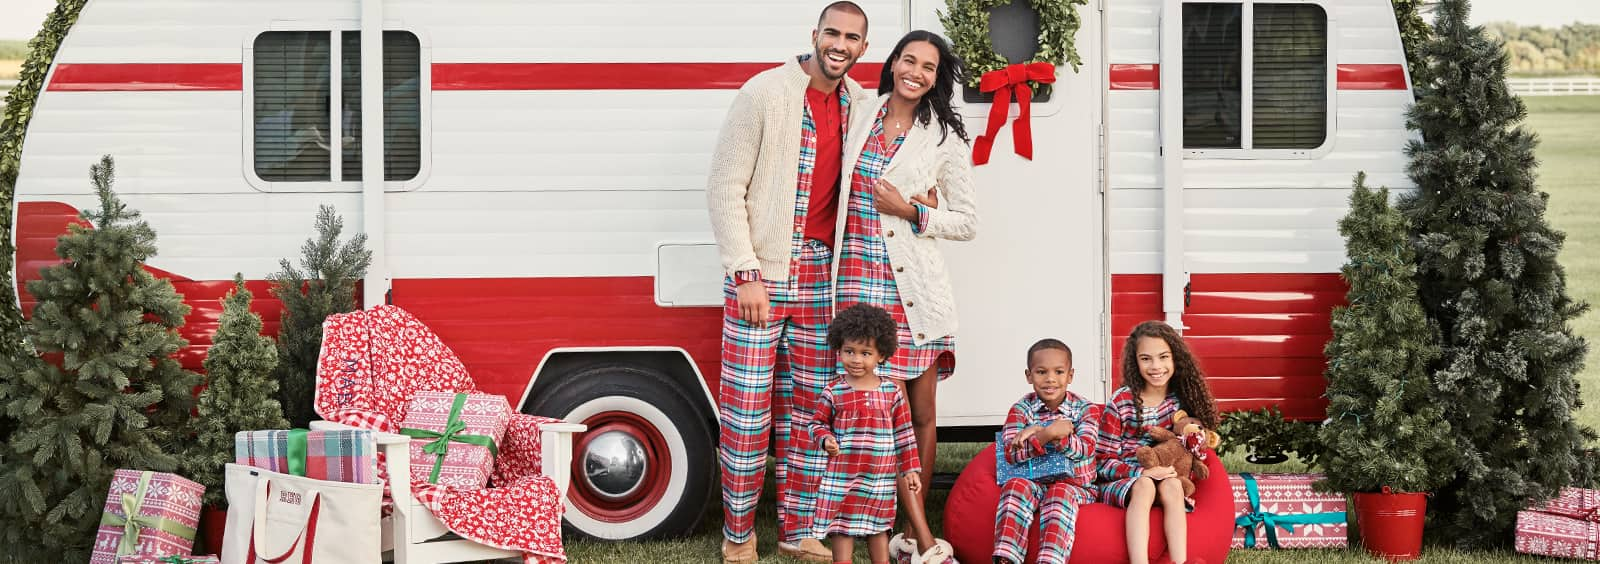 Best Pajamas for Christmas Morning   Lands' End